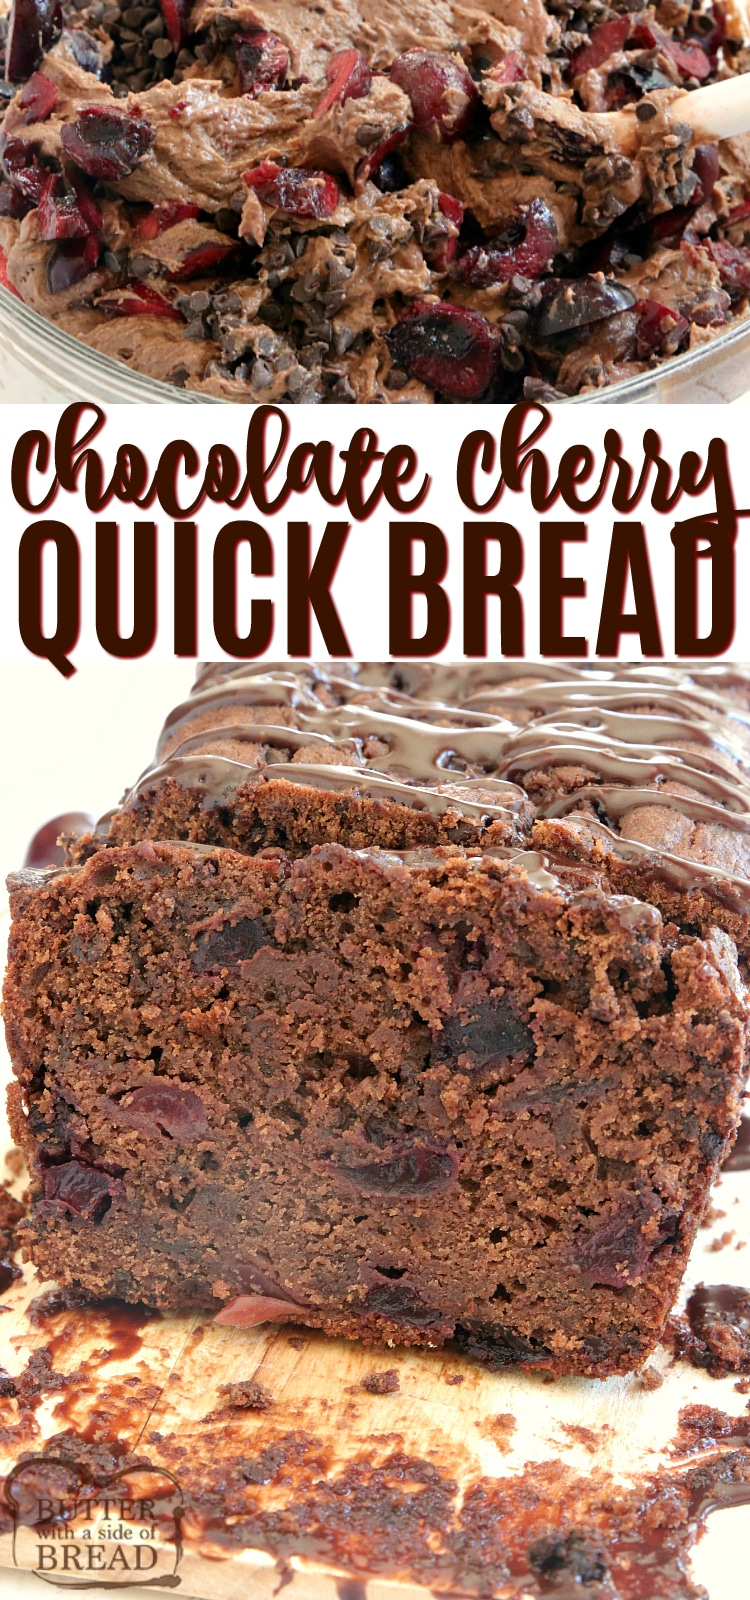 Chocolate Cherry Quick Bread is moist, sweet and full of chocolate and fresh cherries! This easy quick bread recipe is so simple to make and absolutely delicious!